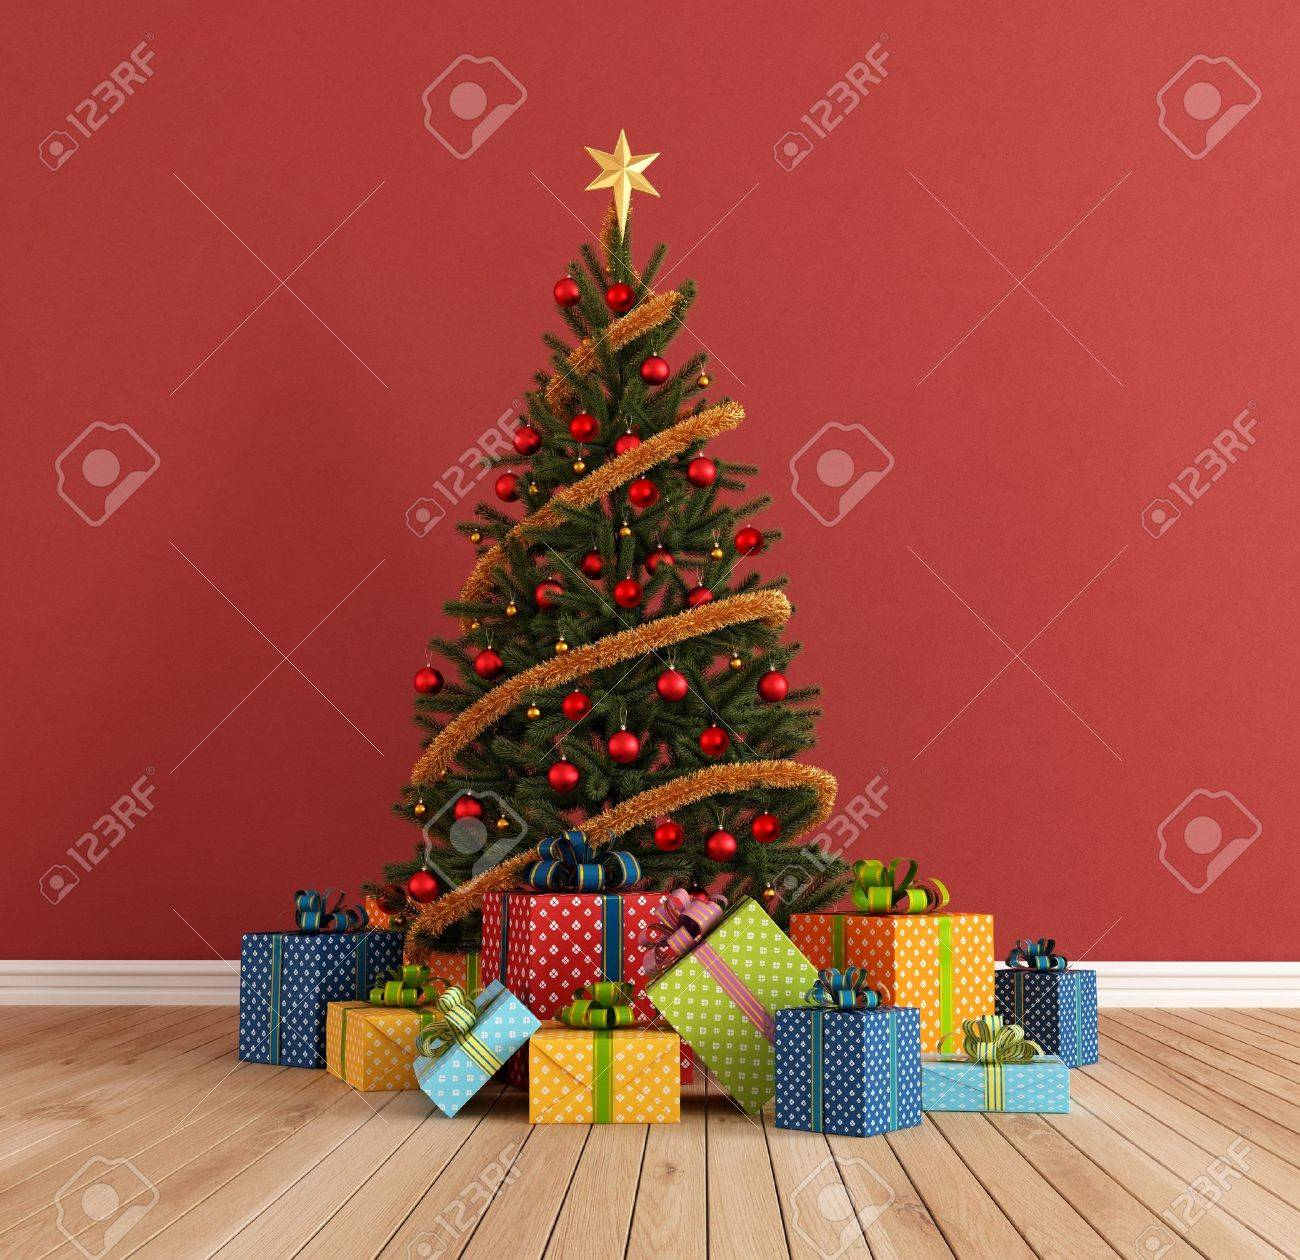 red room with christmas-tree and colorful gift - rendering Stock Photo - 15937845